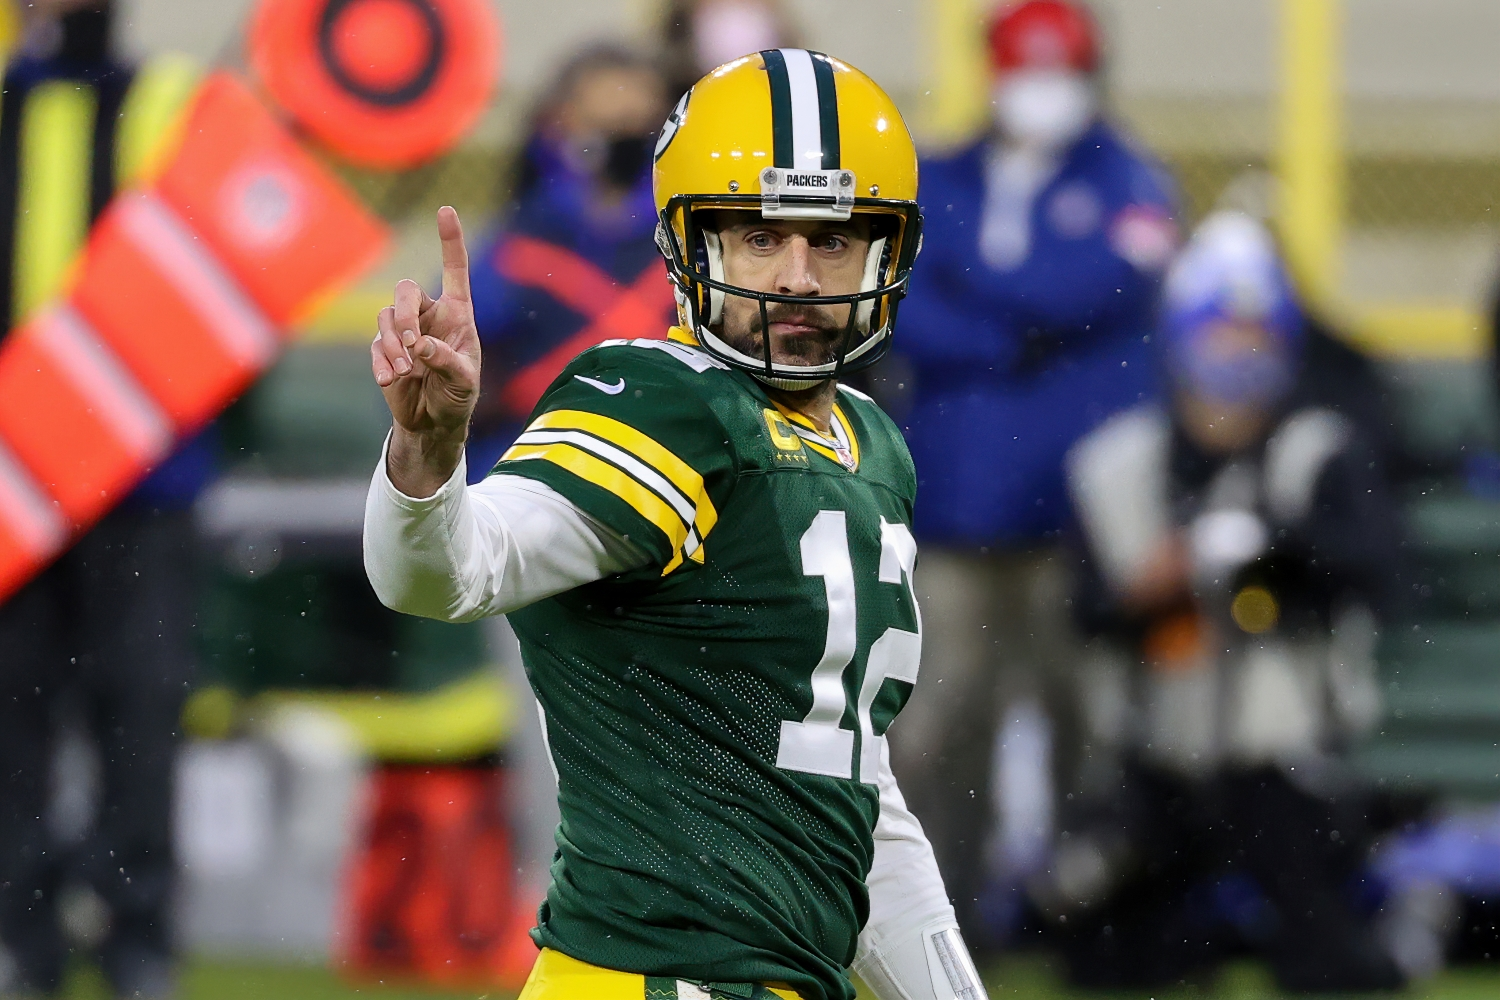 An Easy Win-Win Solution Exists That Can Satisfy Both Aaron Rodgers and the Packers